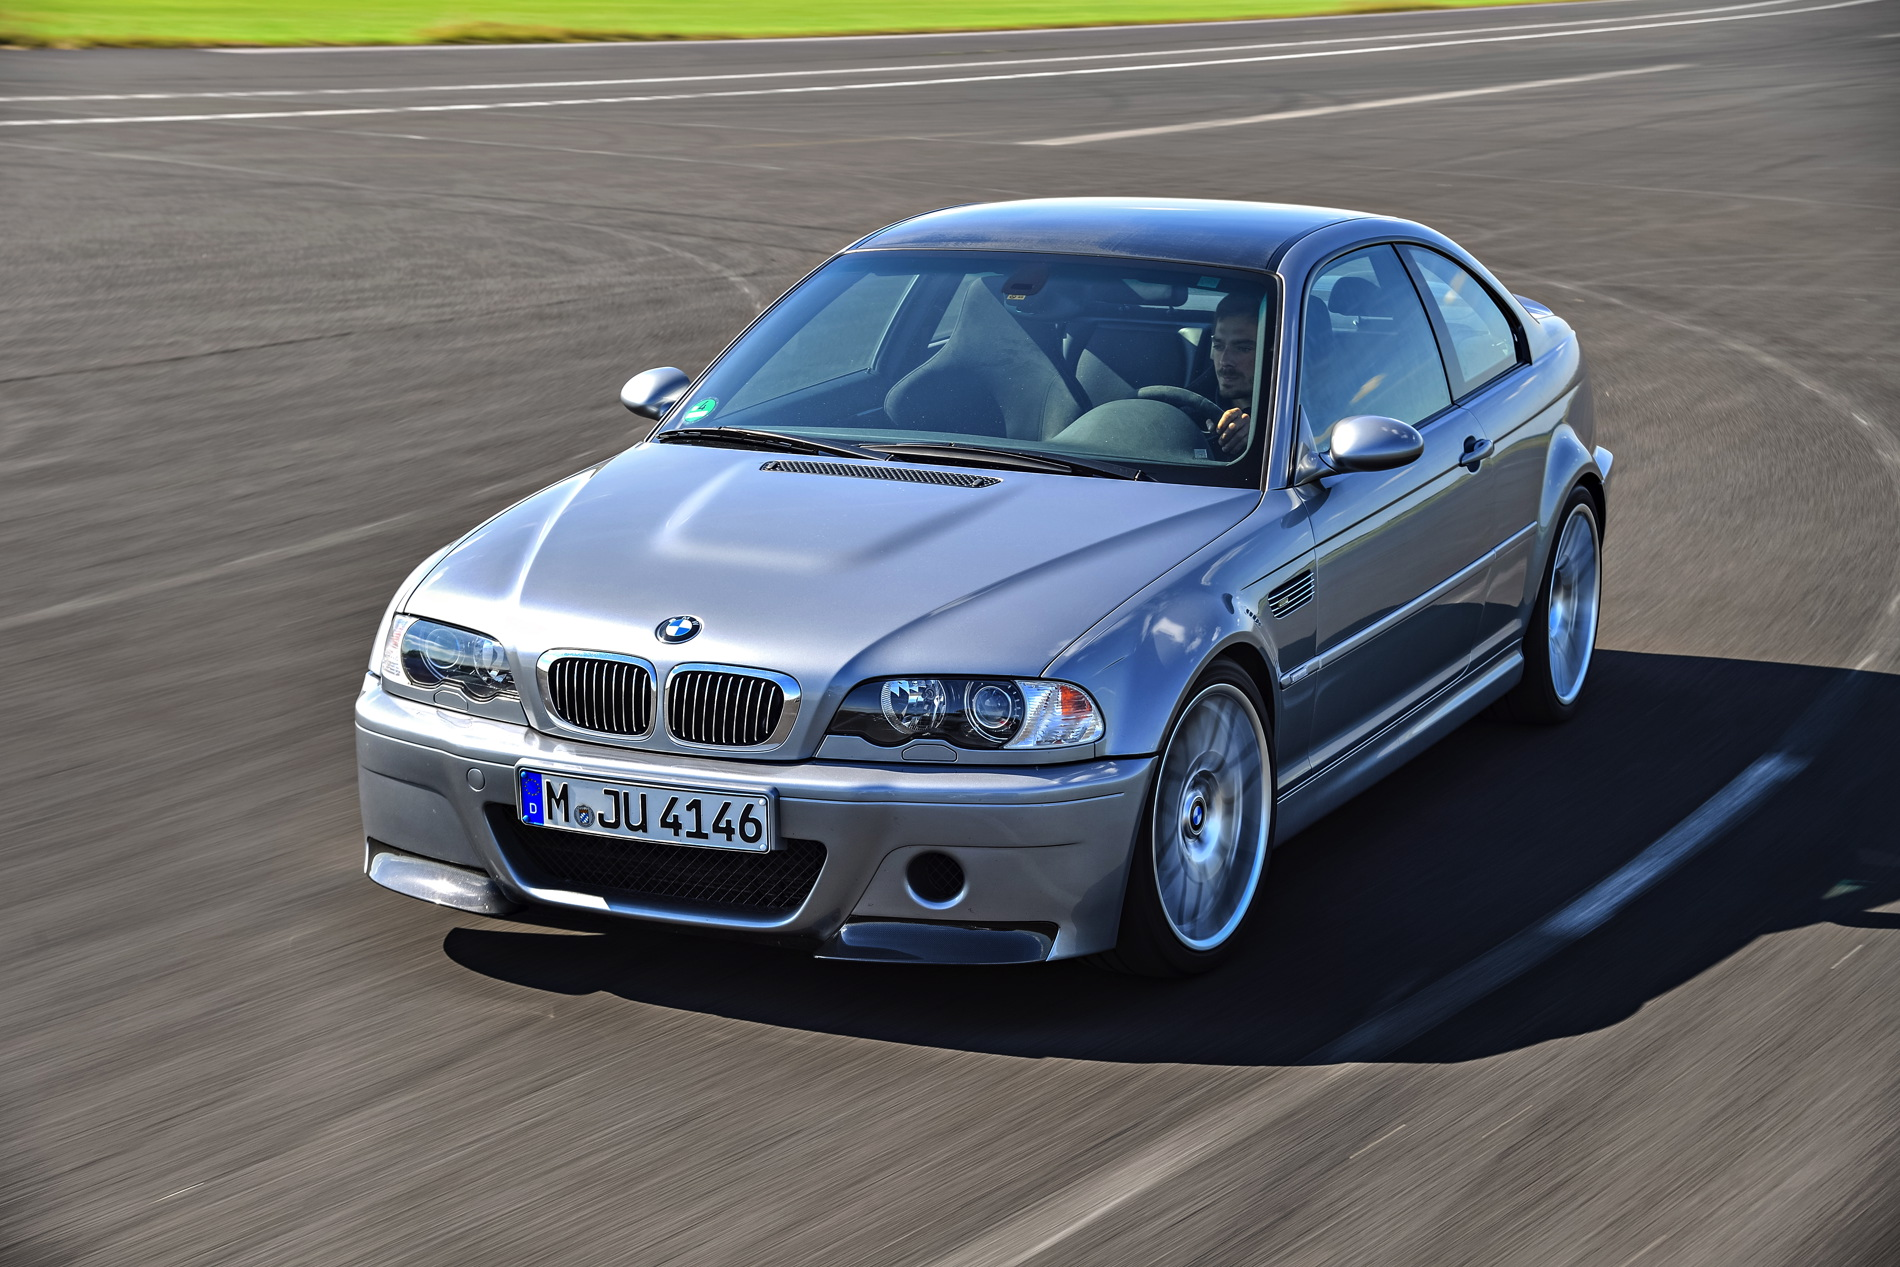 Bmw 3.0 Csl >> The One And Only: BMW E46 M3 CSL